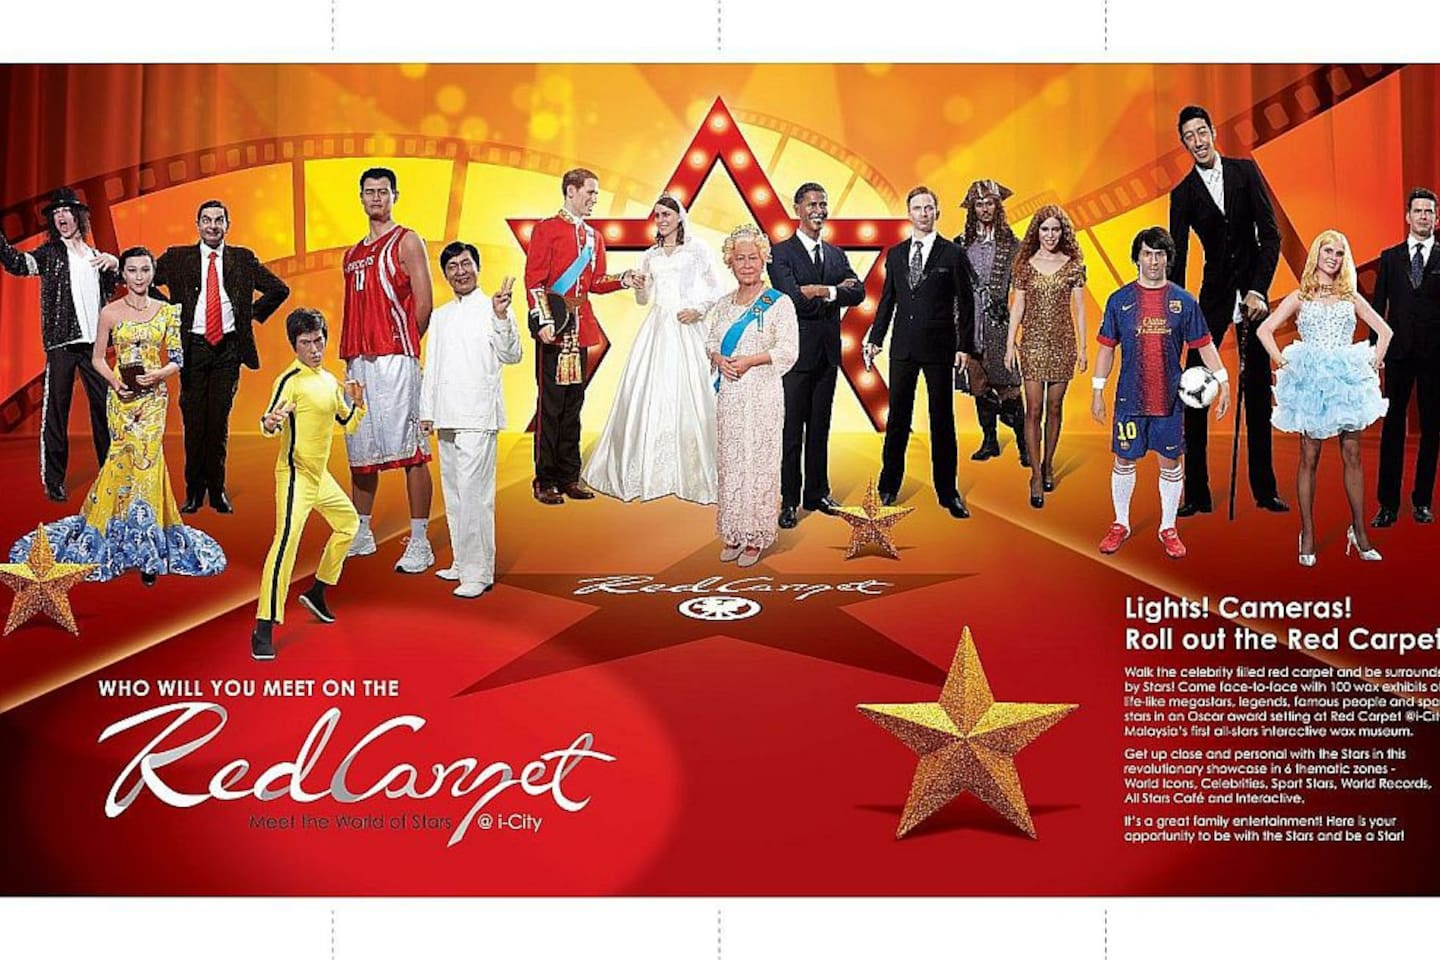 Red Carpet 2 @ i-City Carrying the title of Malaysia's first home-grown interactive wax museum, interact with up to 100 well-dressed personalities. Measuring up to 30,000 square foot, Red Carpet 2 allows visitors to have fun with their favorite Superheroes, Royals, Head of States, Sci-fi, Tech Giants, Corporate Movers, MTV, Outer Space, Magical World, K-pop (Hallyu), Canto pop, Oscars, A-List artistes and more. Red Carpet 2 is designed with an indoor and outdoor zone.